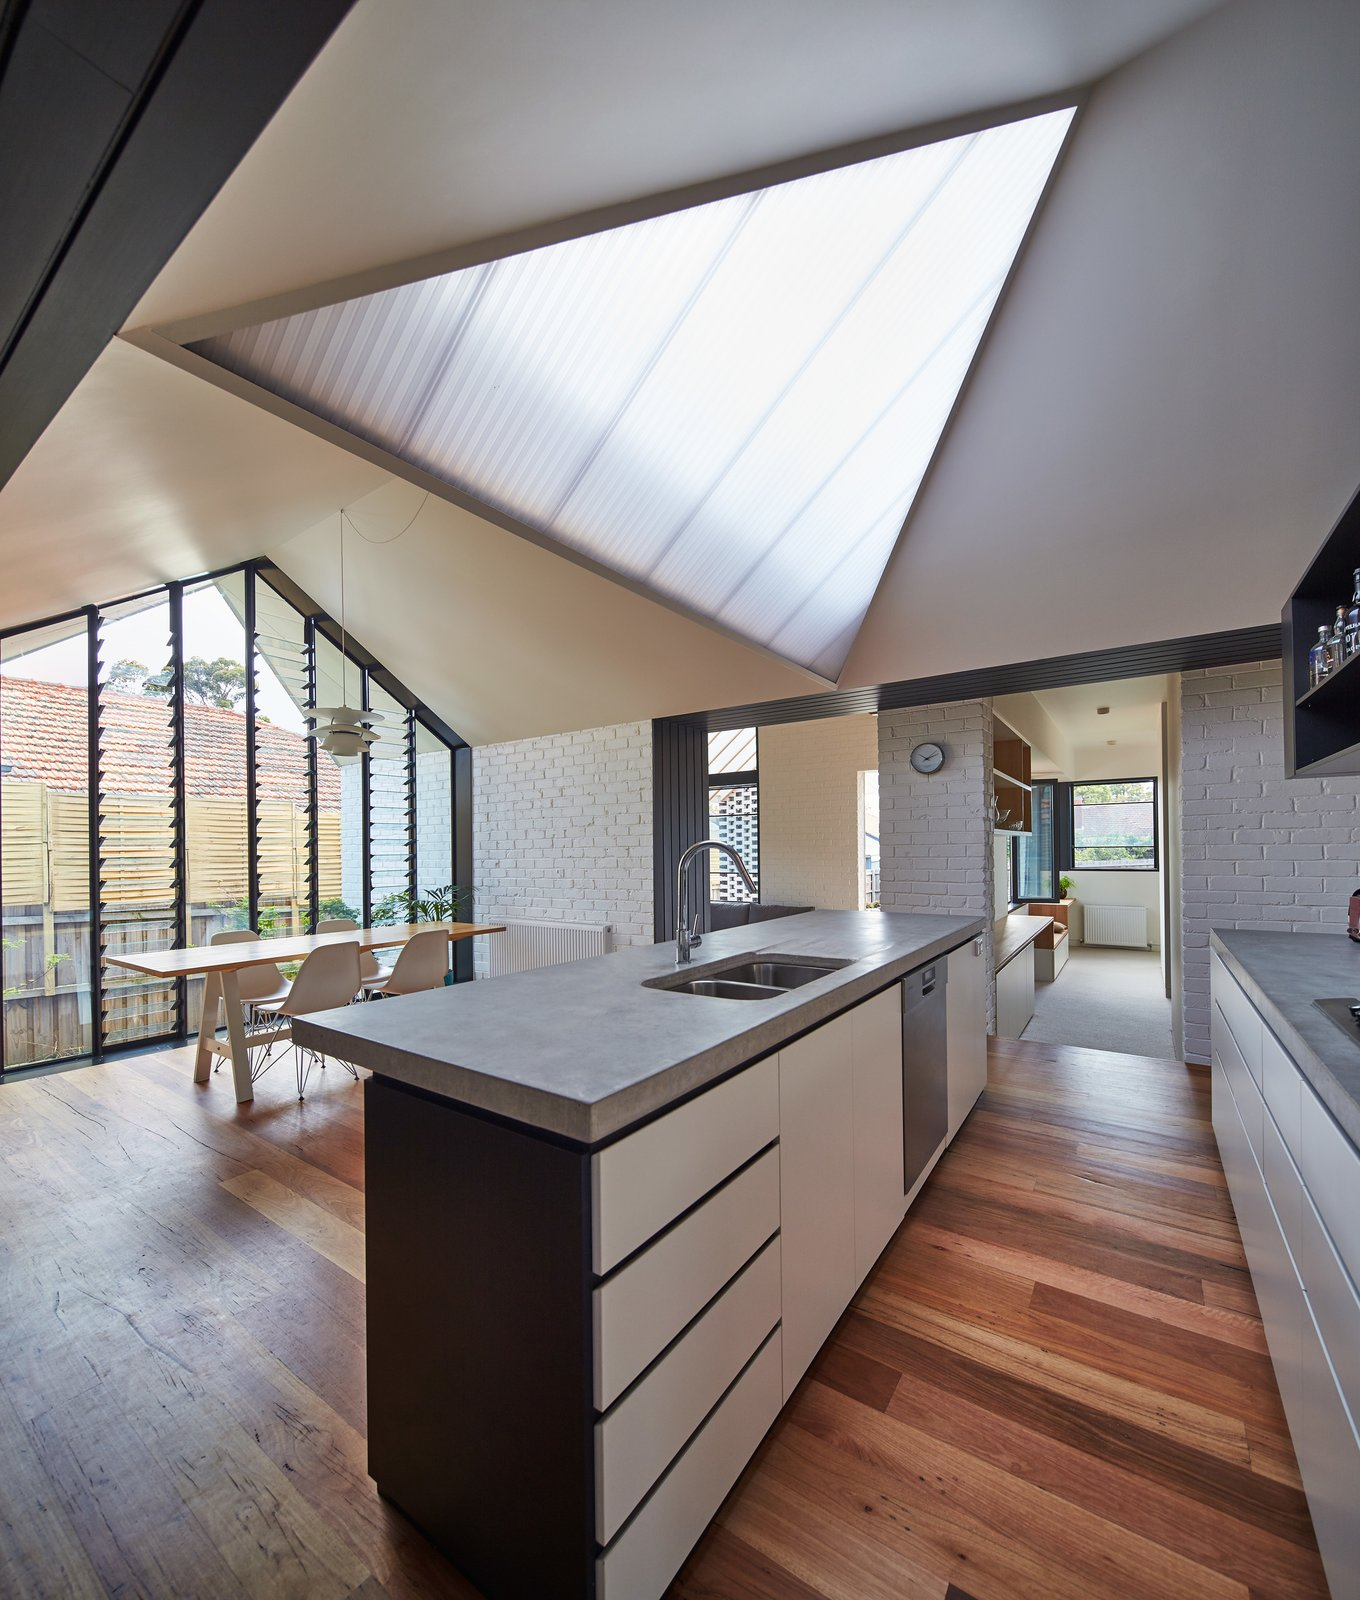 Photo 11 of 13 in A New Hip Roof Rejuvenates a California-Style ...